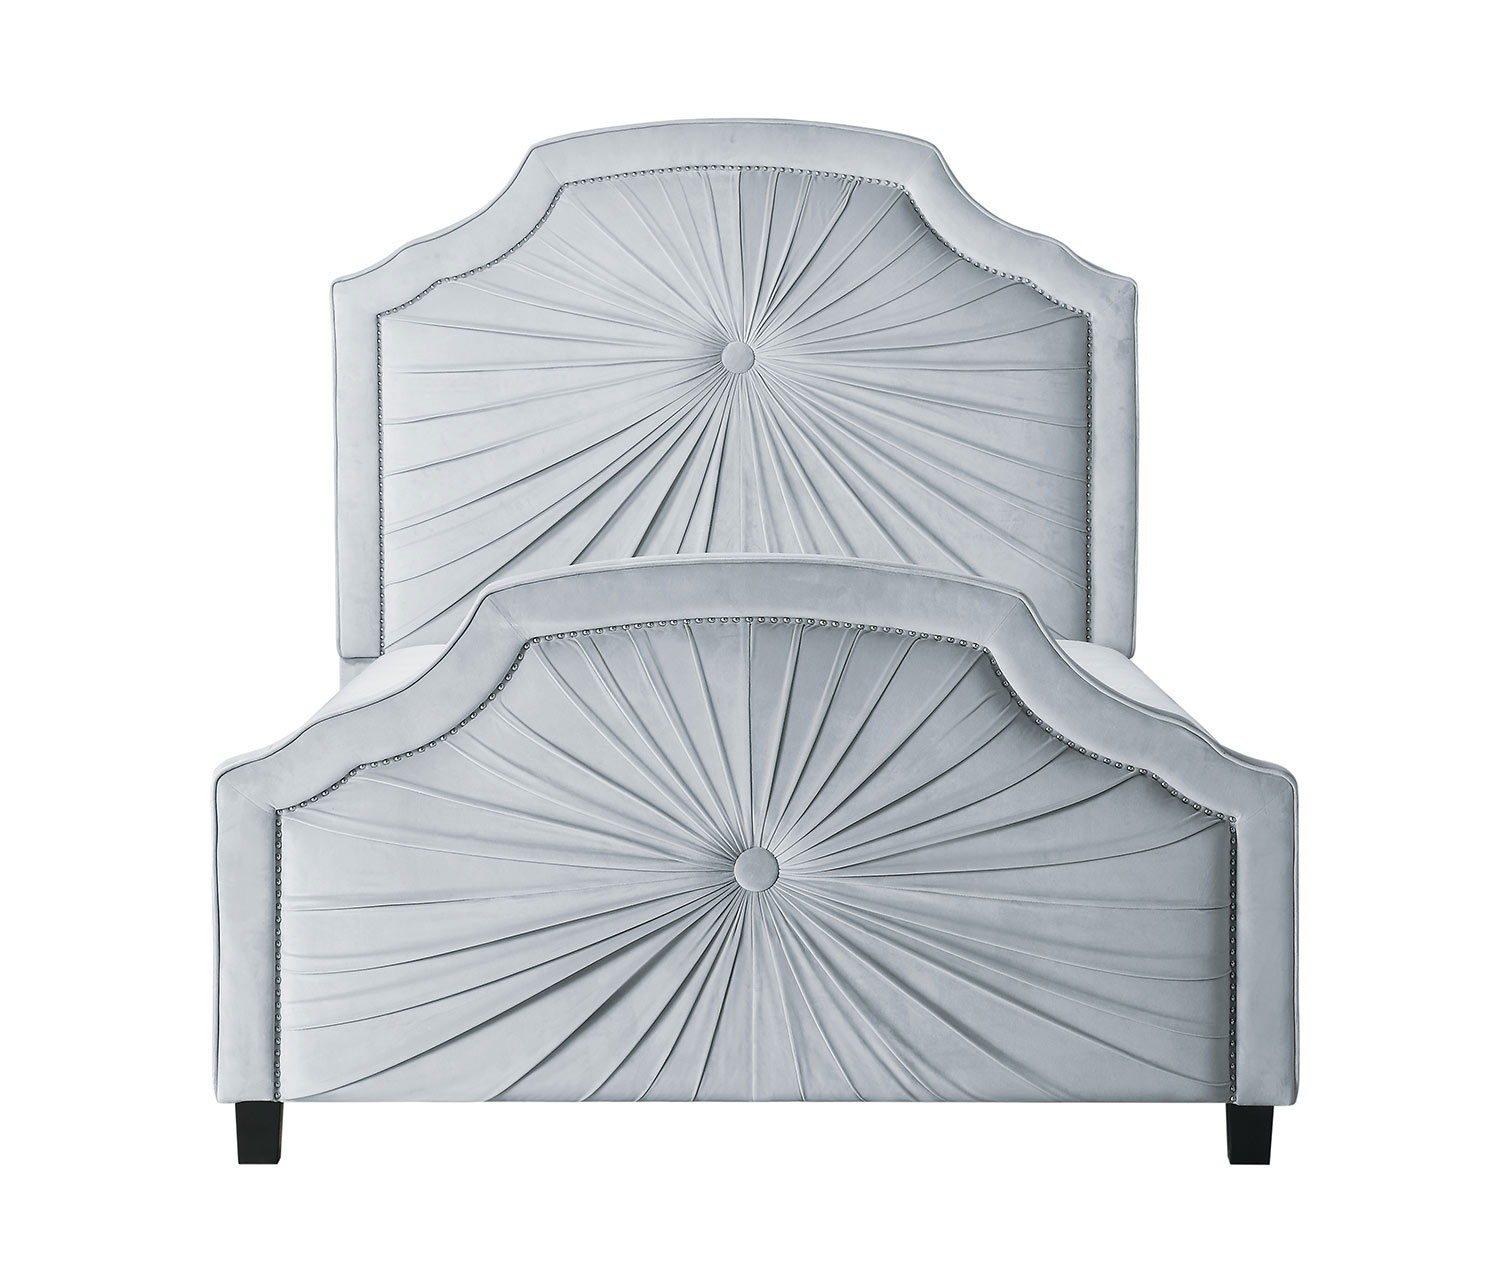 Homelegance Bossa Nova Bed - Light Gray